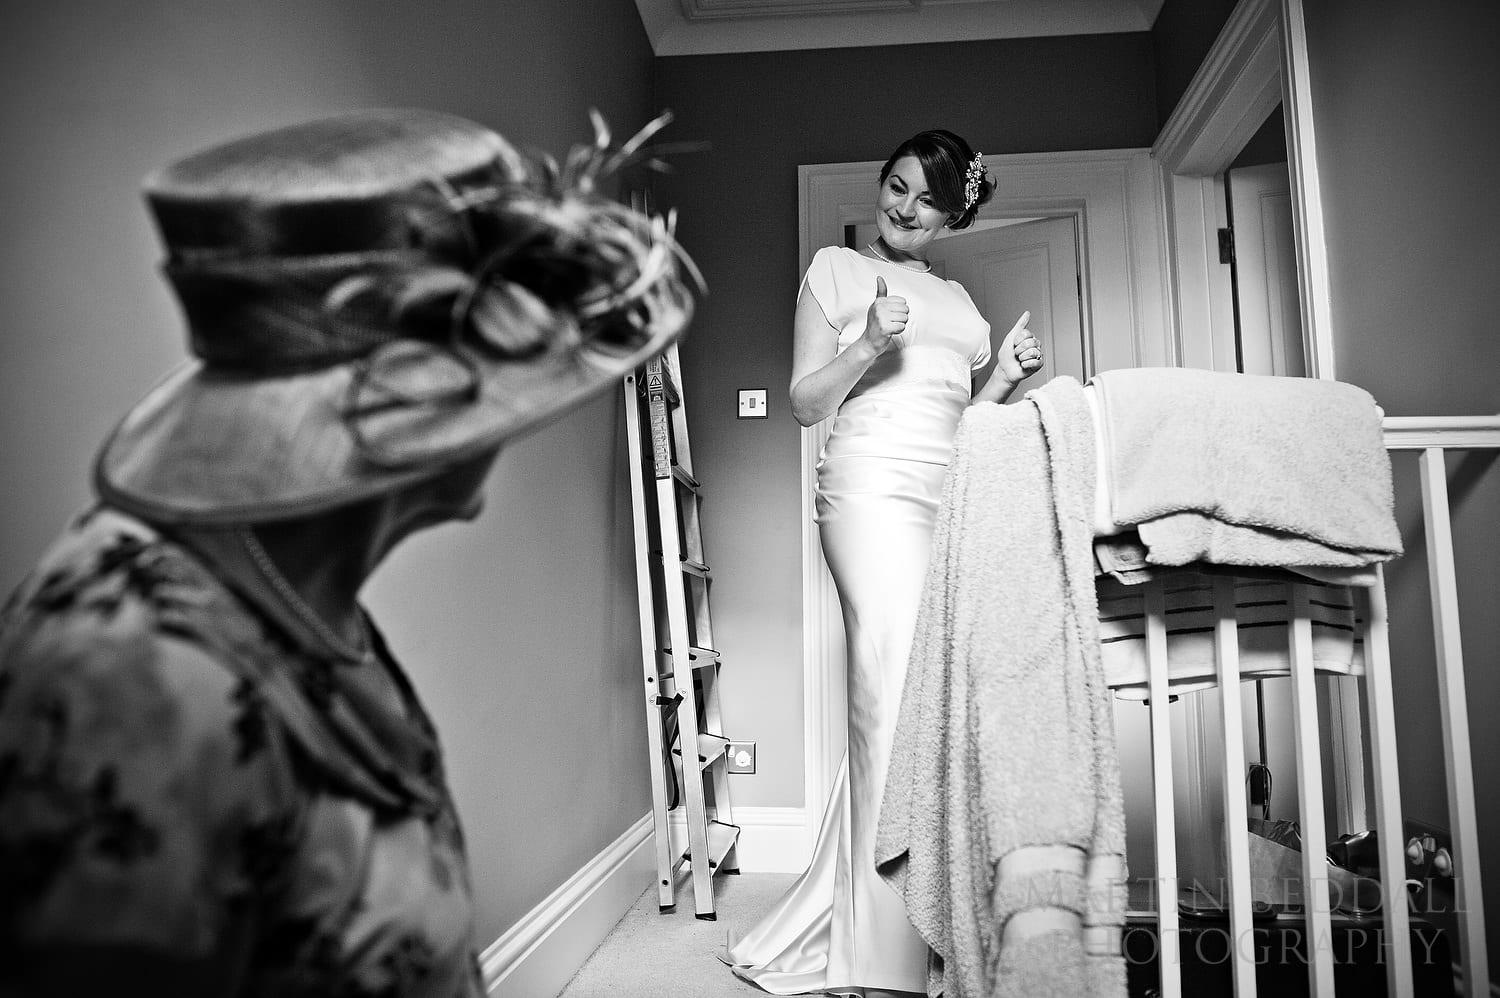 Thumbs up to Wedding photography in 2011